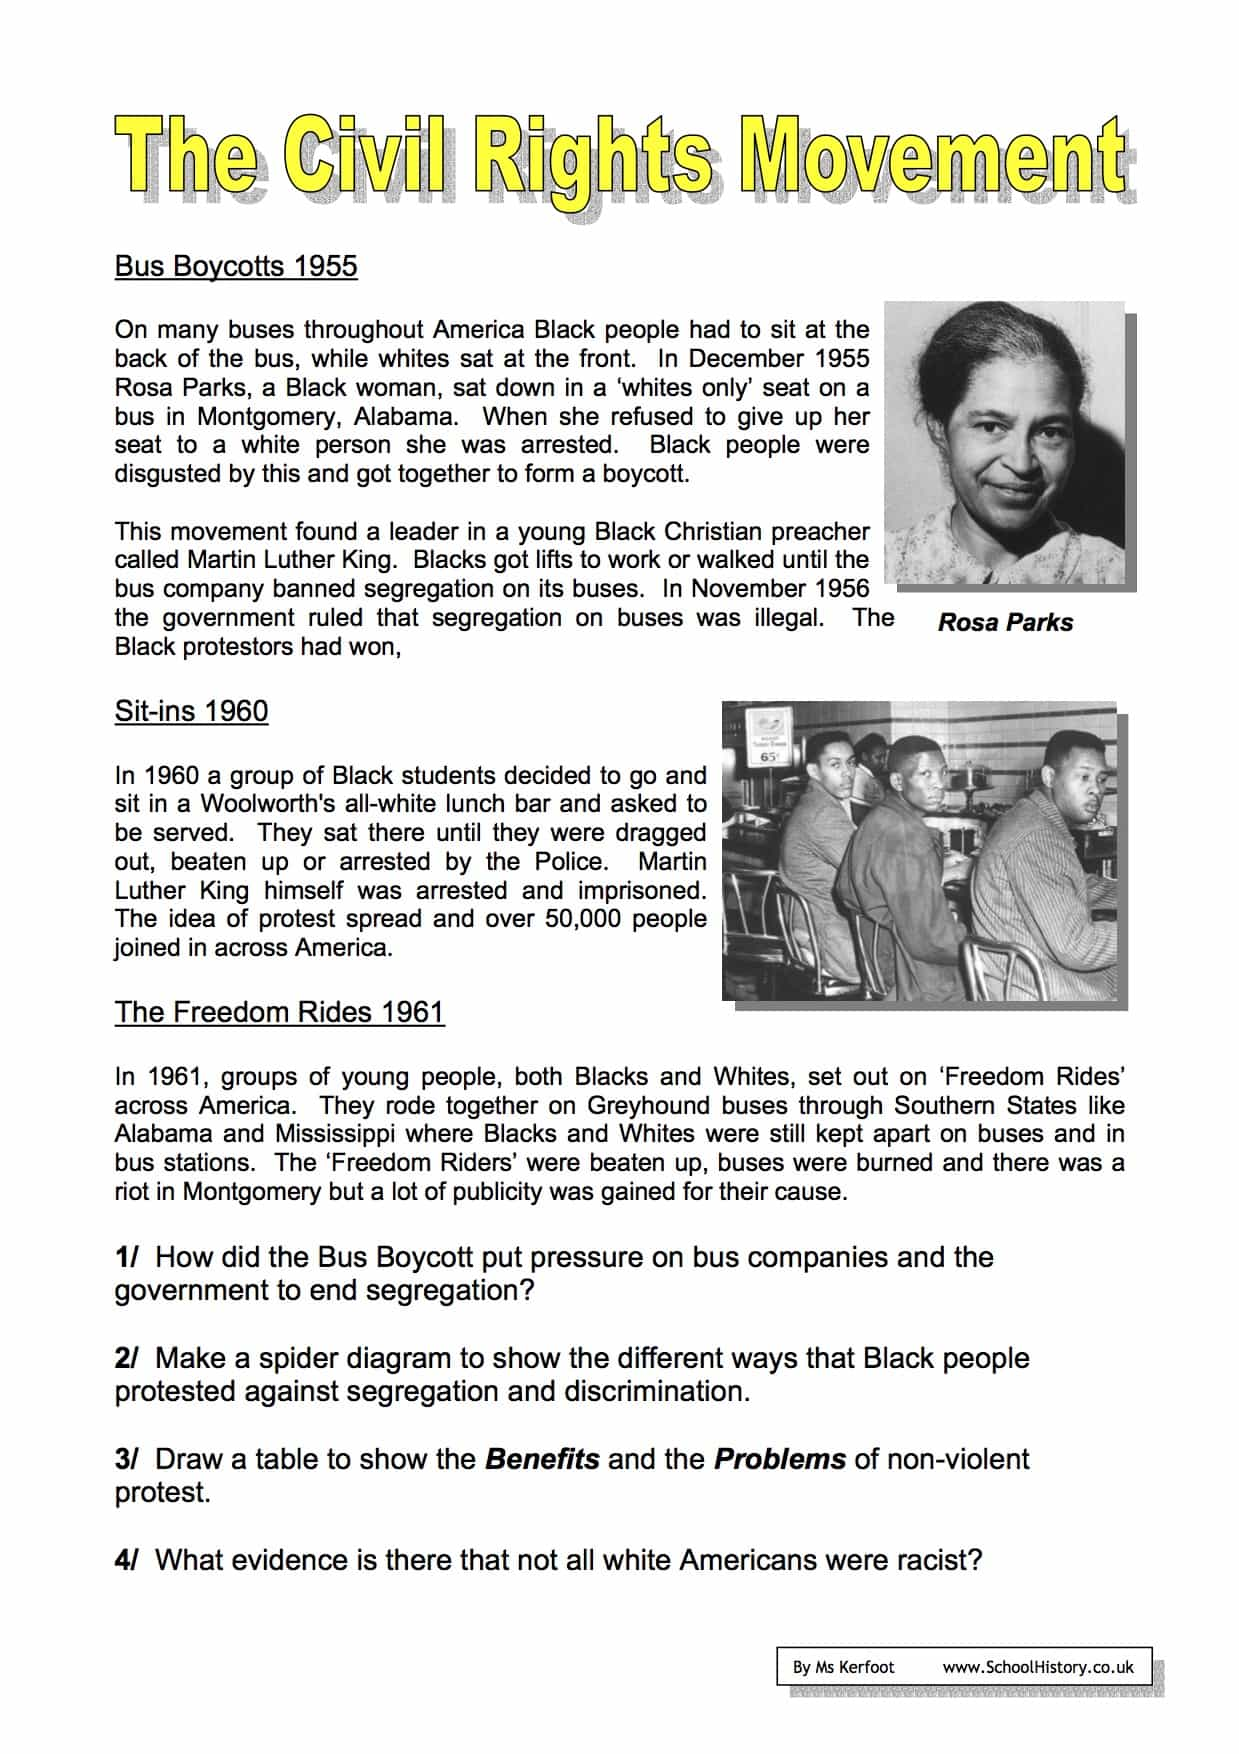 The Civil Rights Movement Worksheets Year 9 Free Pdf Civil Rights Movement Worksheets Answer Download The Civil Rights Movement Worksheets